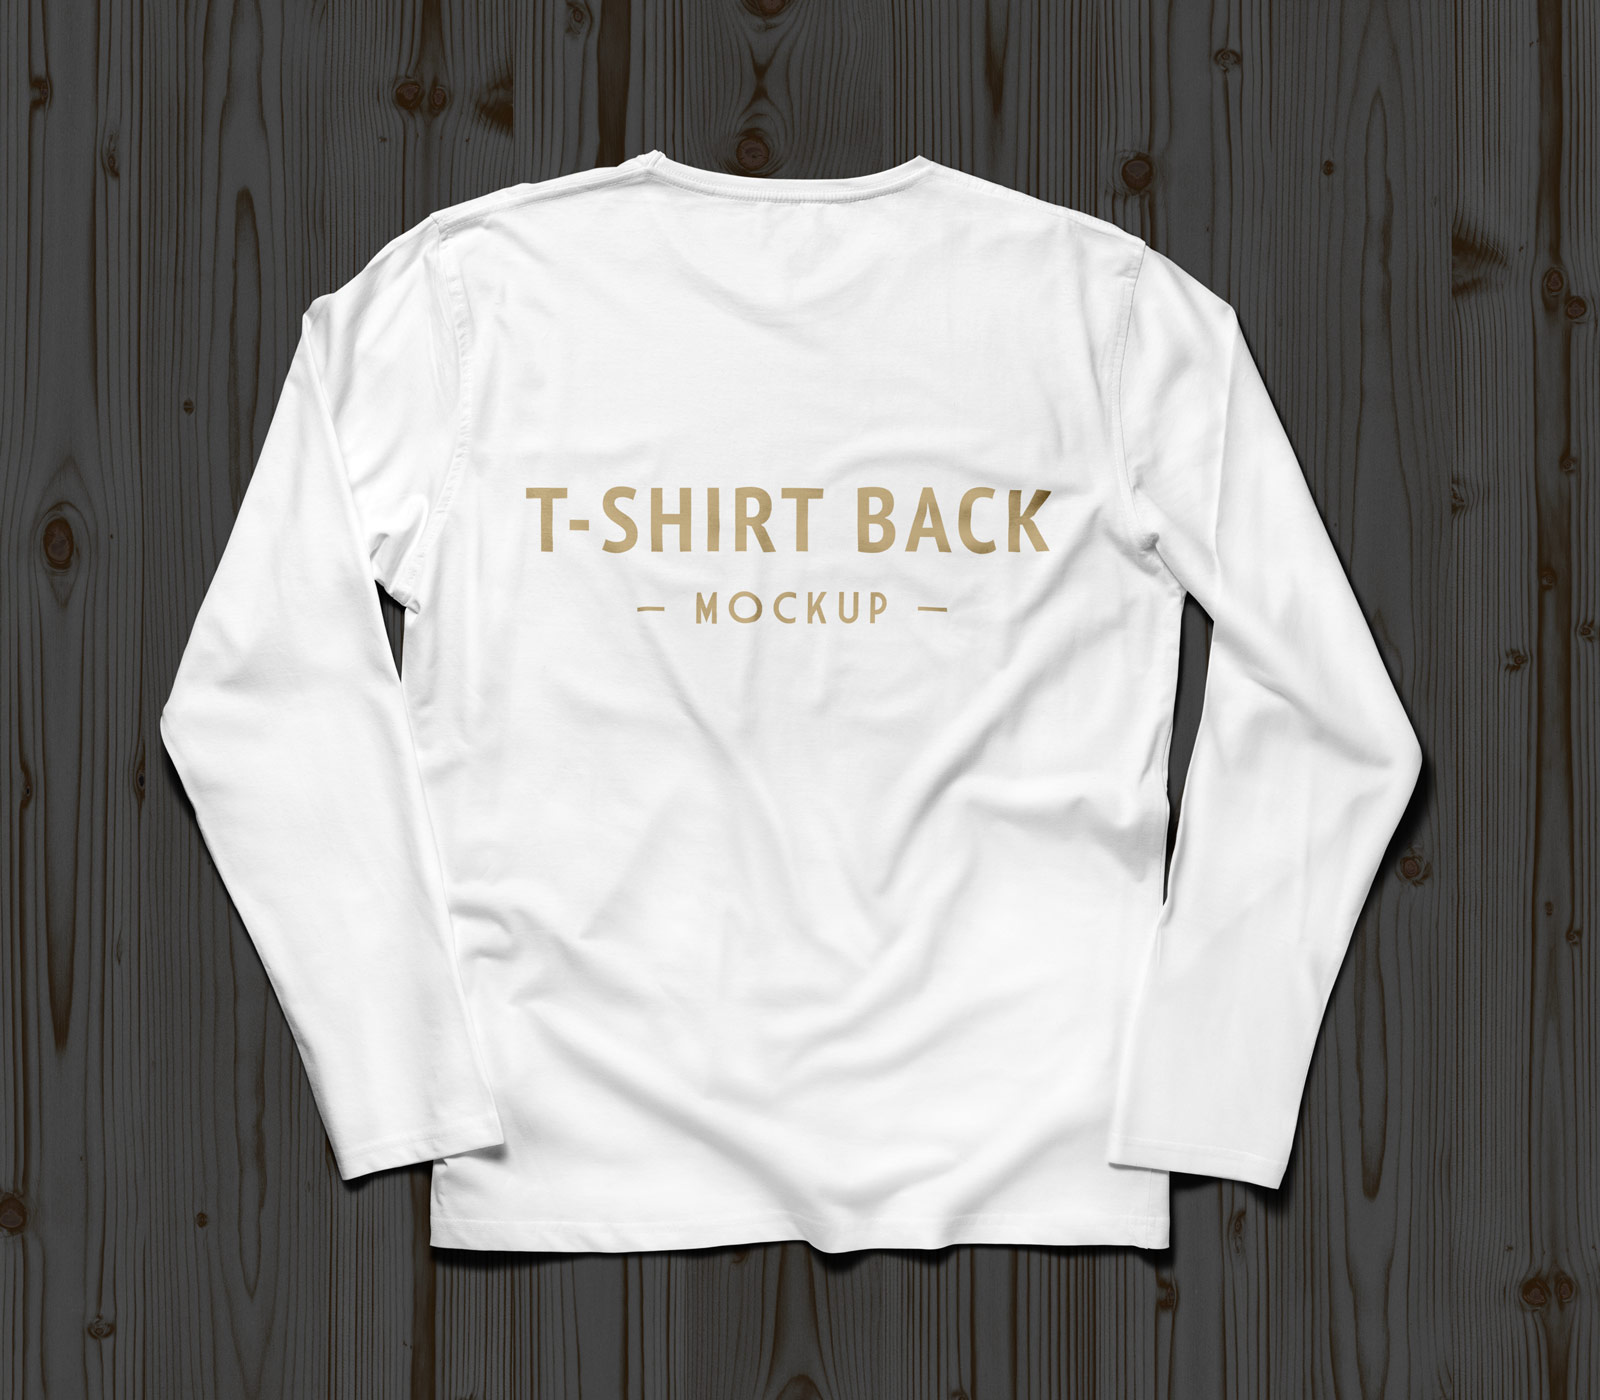 Free full sleeves t shirt mockup psd front back good for White t shirt mockup